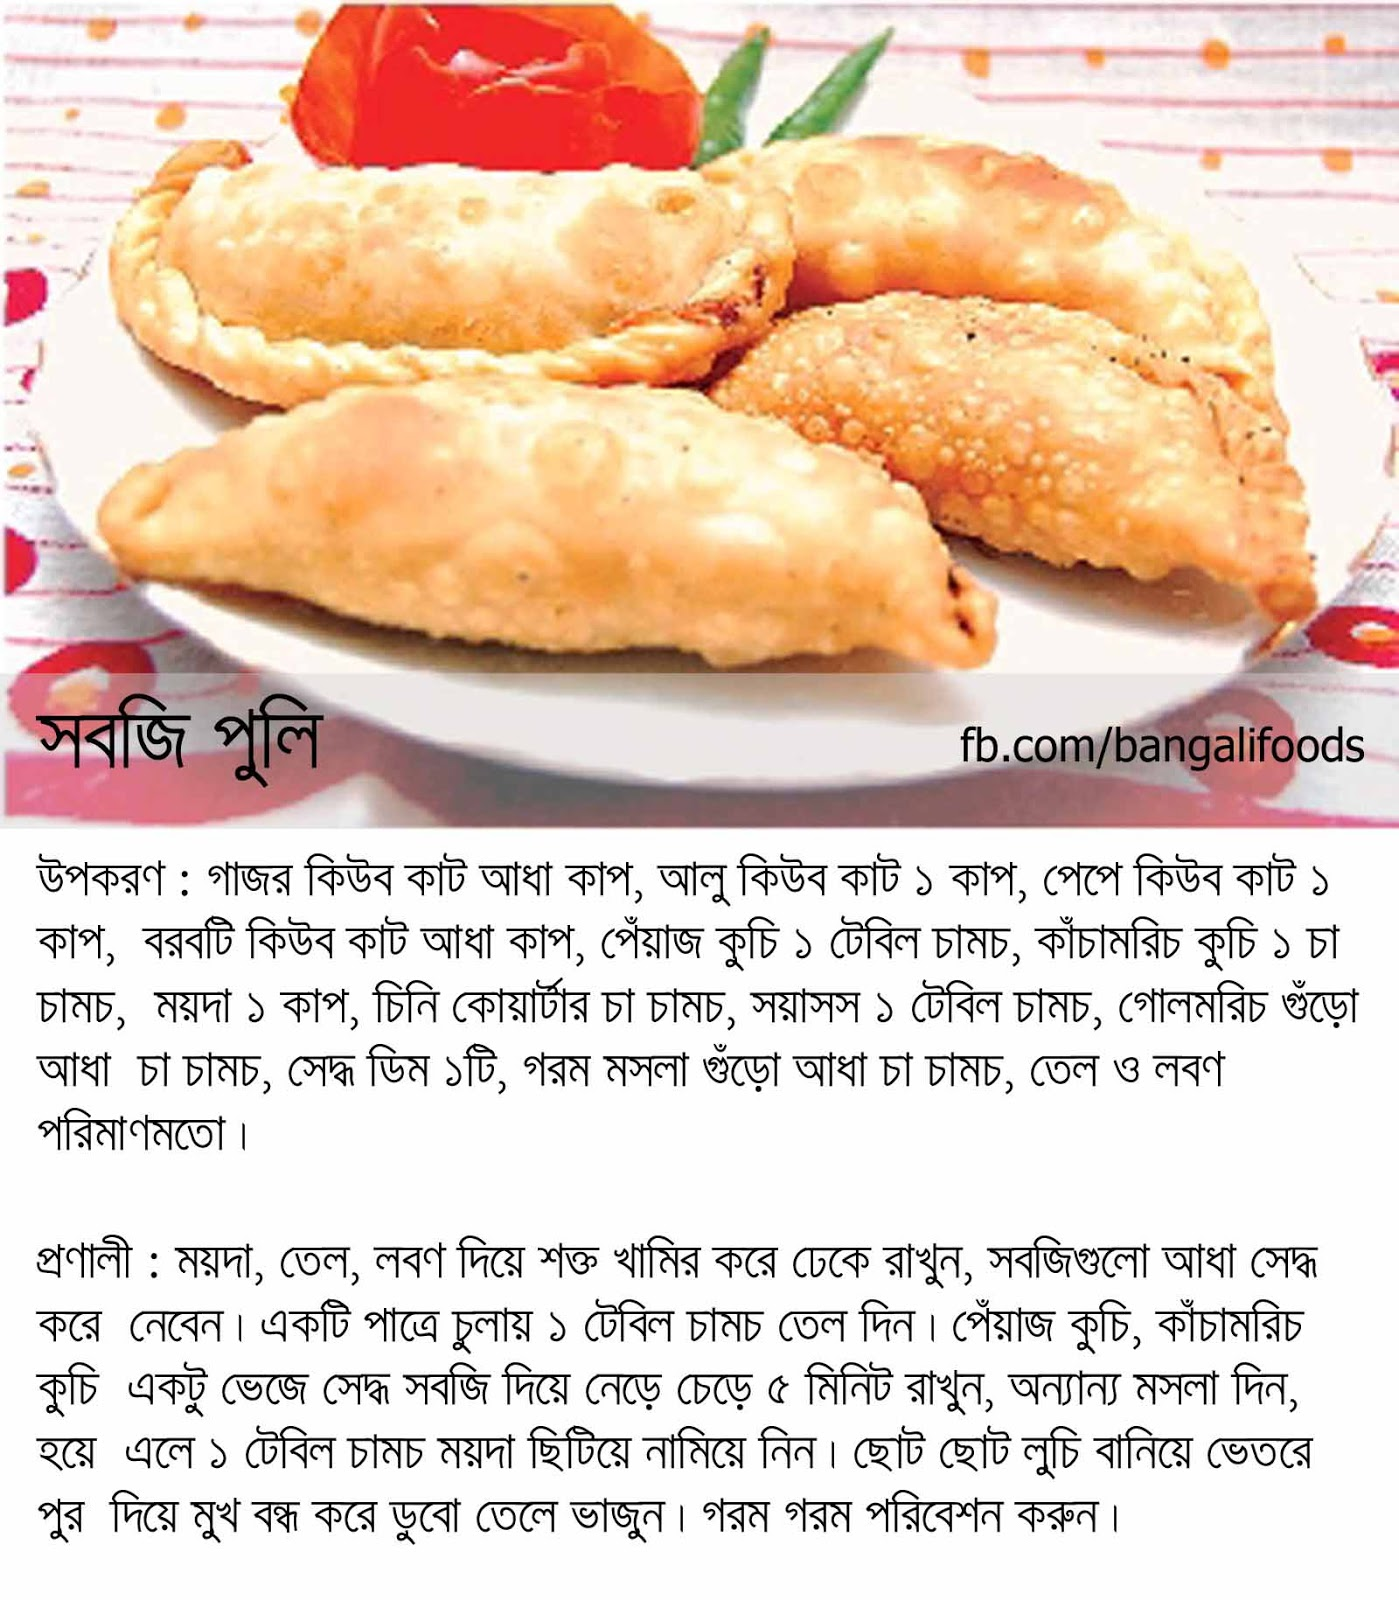 Bengali food recipe in bengali language takvim kalender hd bangali foods snack food recipes in bengali forumfinder Image collections